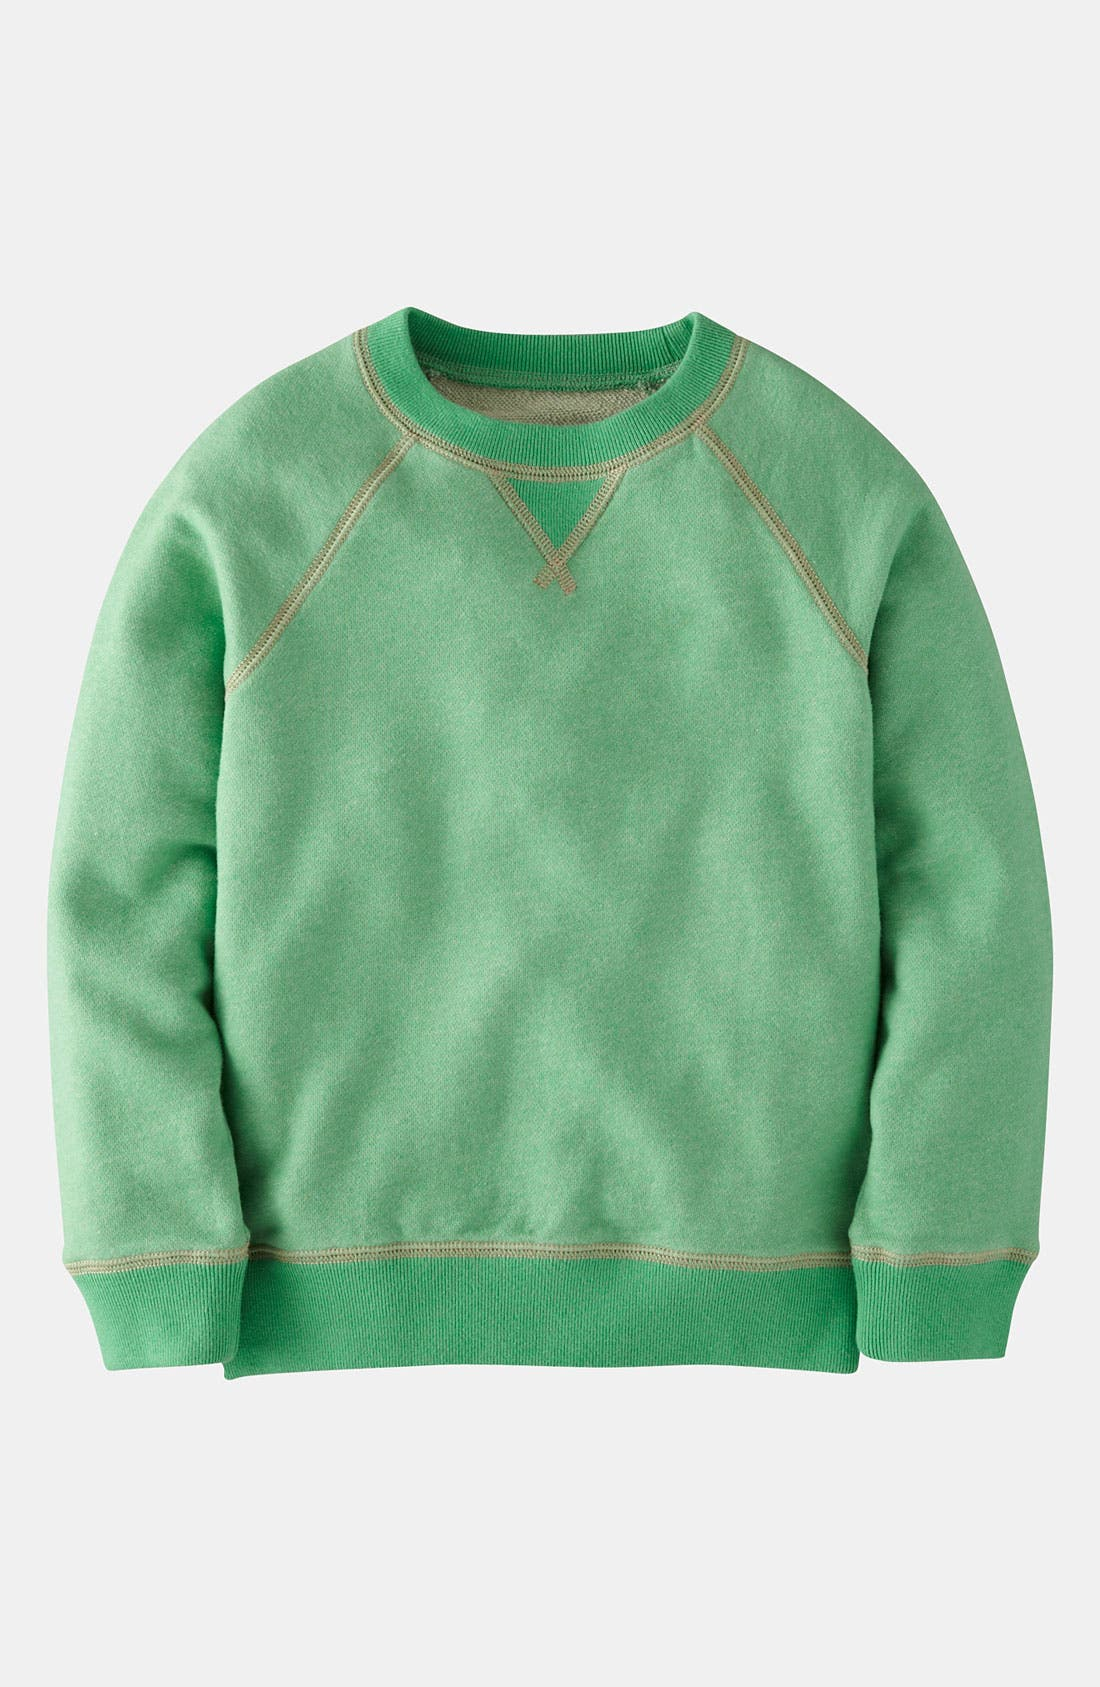 Main Image - Mini Boden Crewneck Sweatshirt (Little Boys & Big Boys)